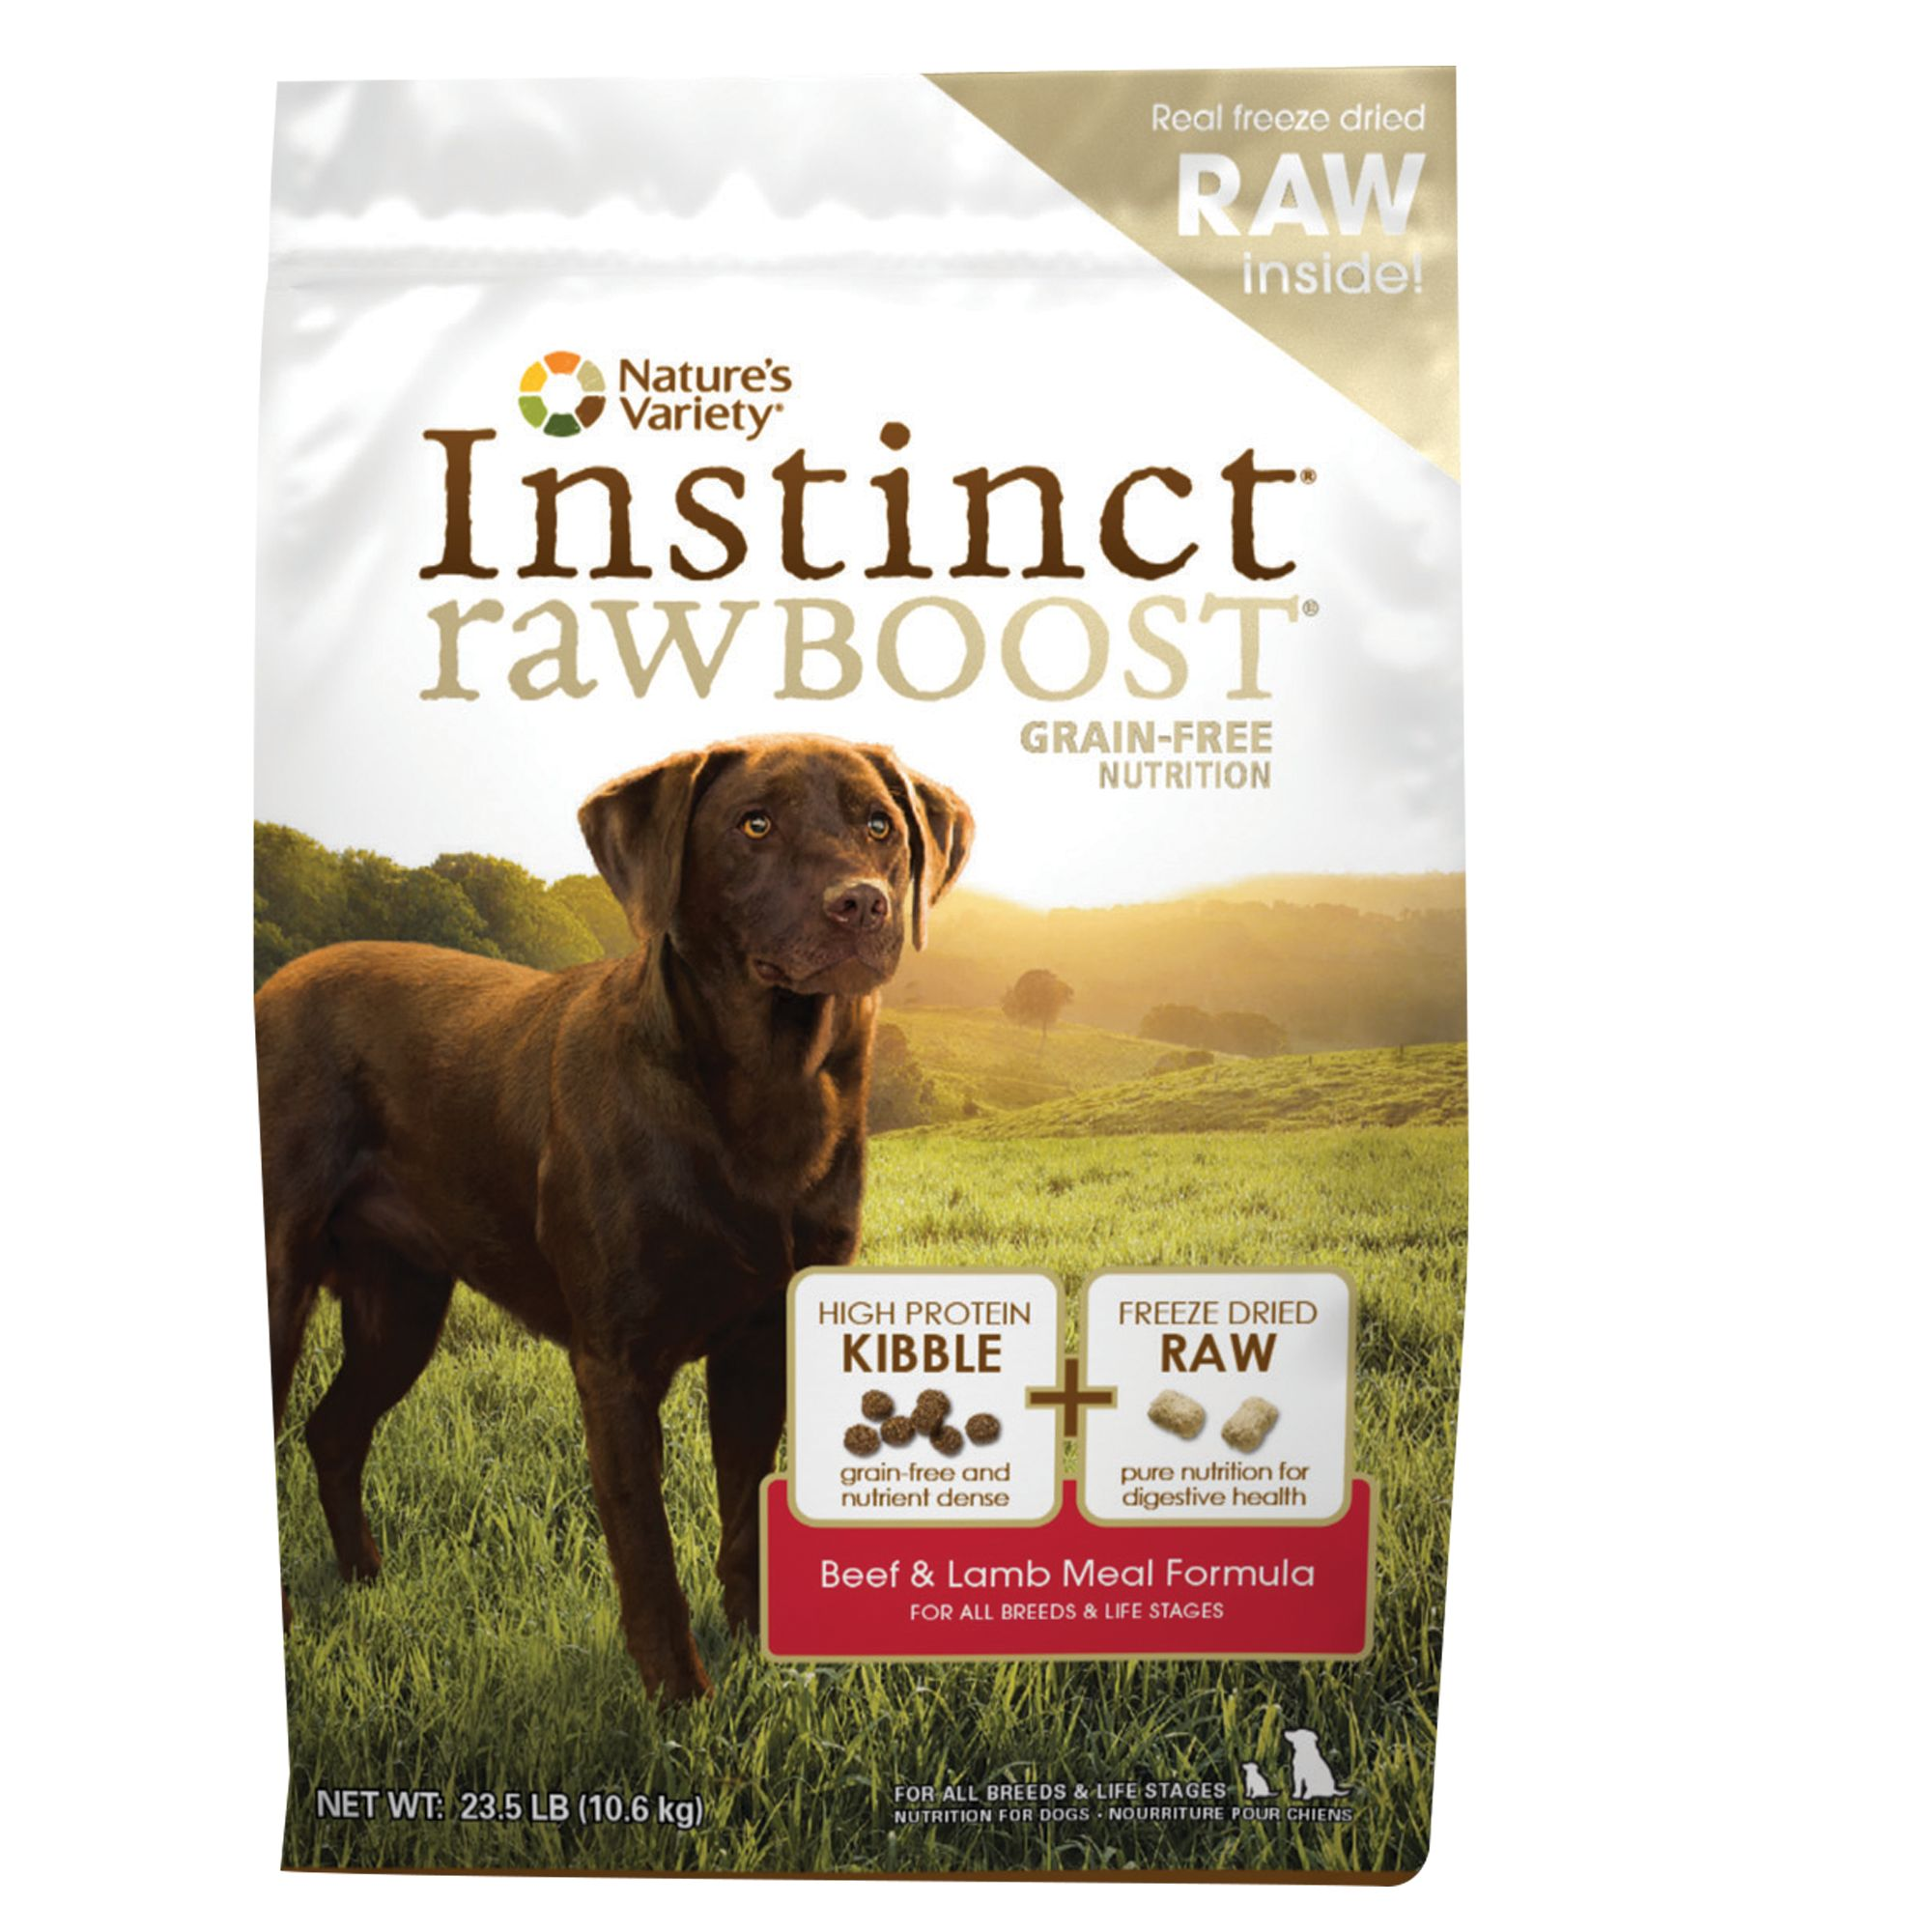 Natures Variety Instinct Raw Boost Dog Food Grain Free High Protein Beef And Lamb Meal Size 23.5 Lb